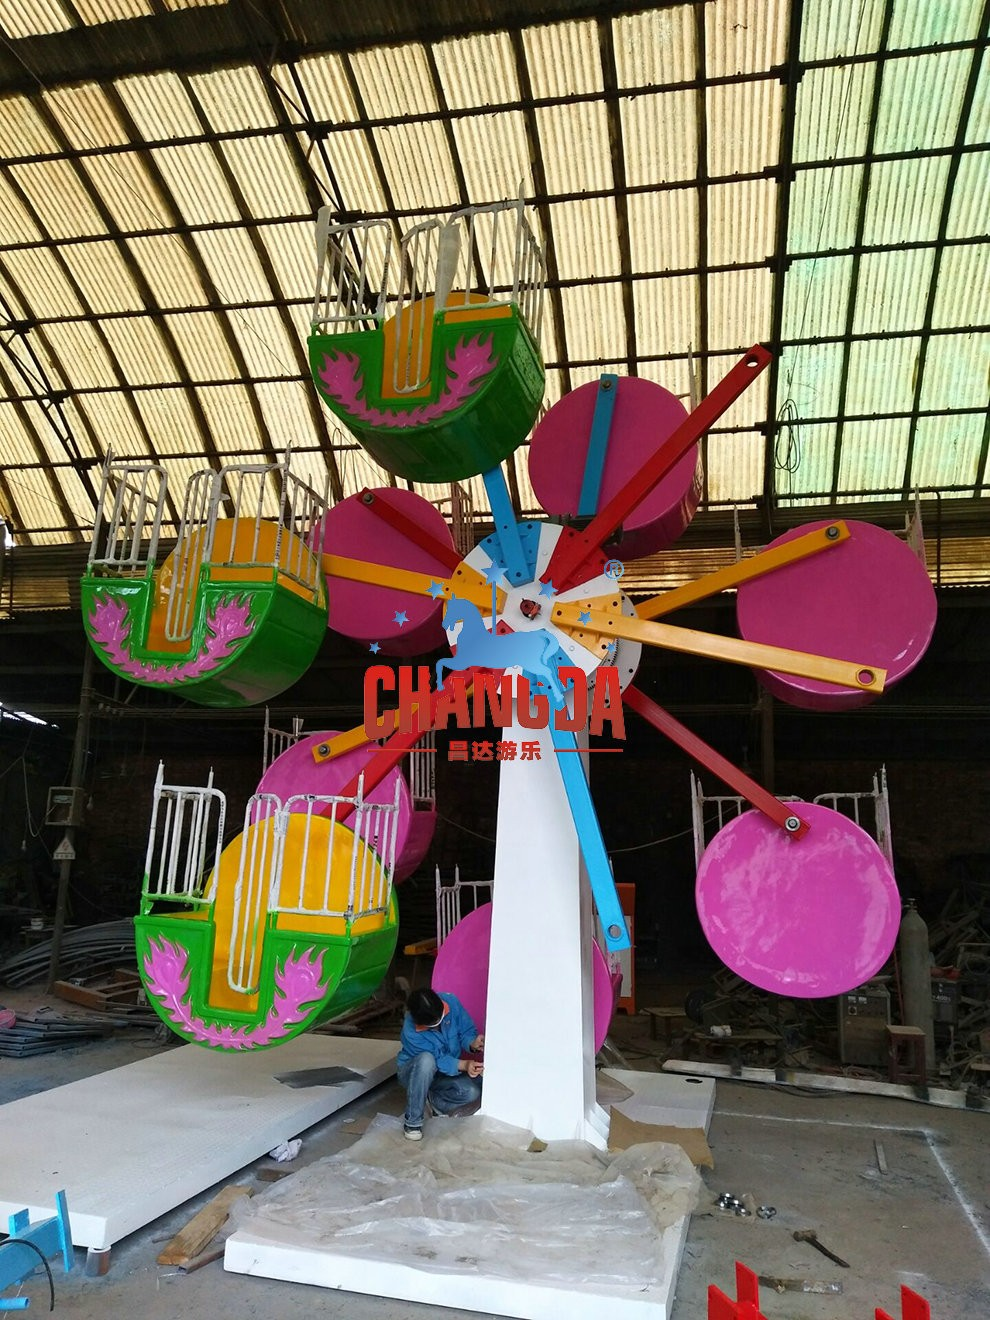 24 seats mini fairground rides small FERRIS WHEEL for sale for kids